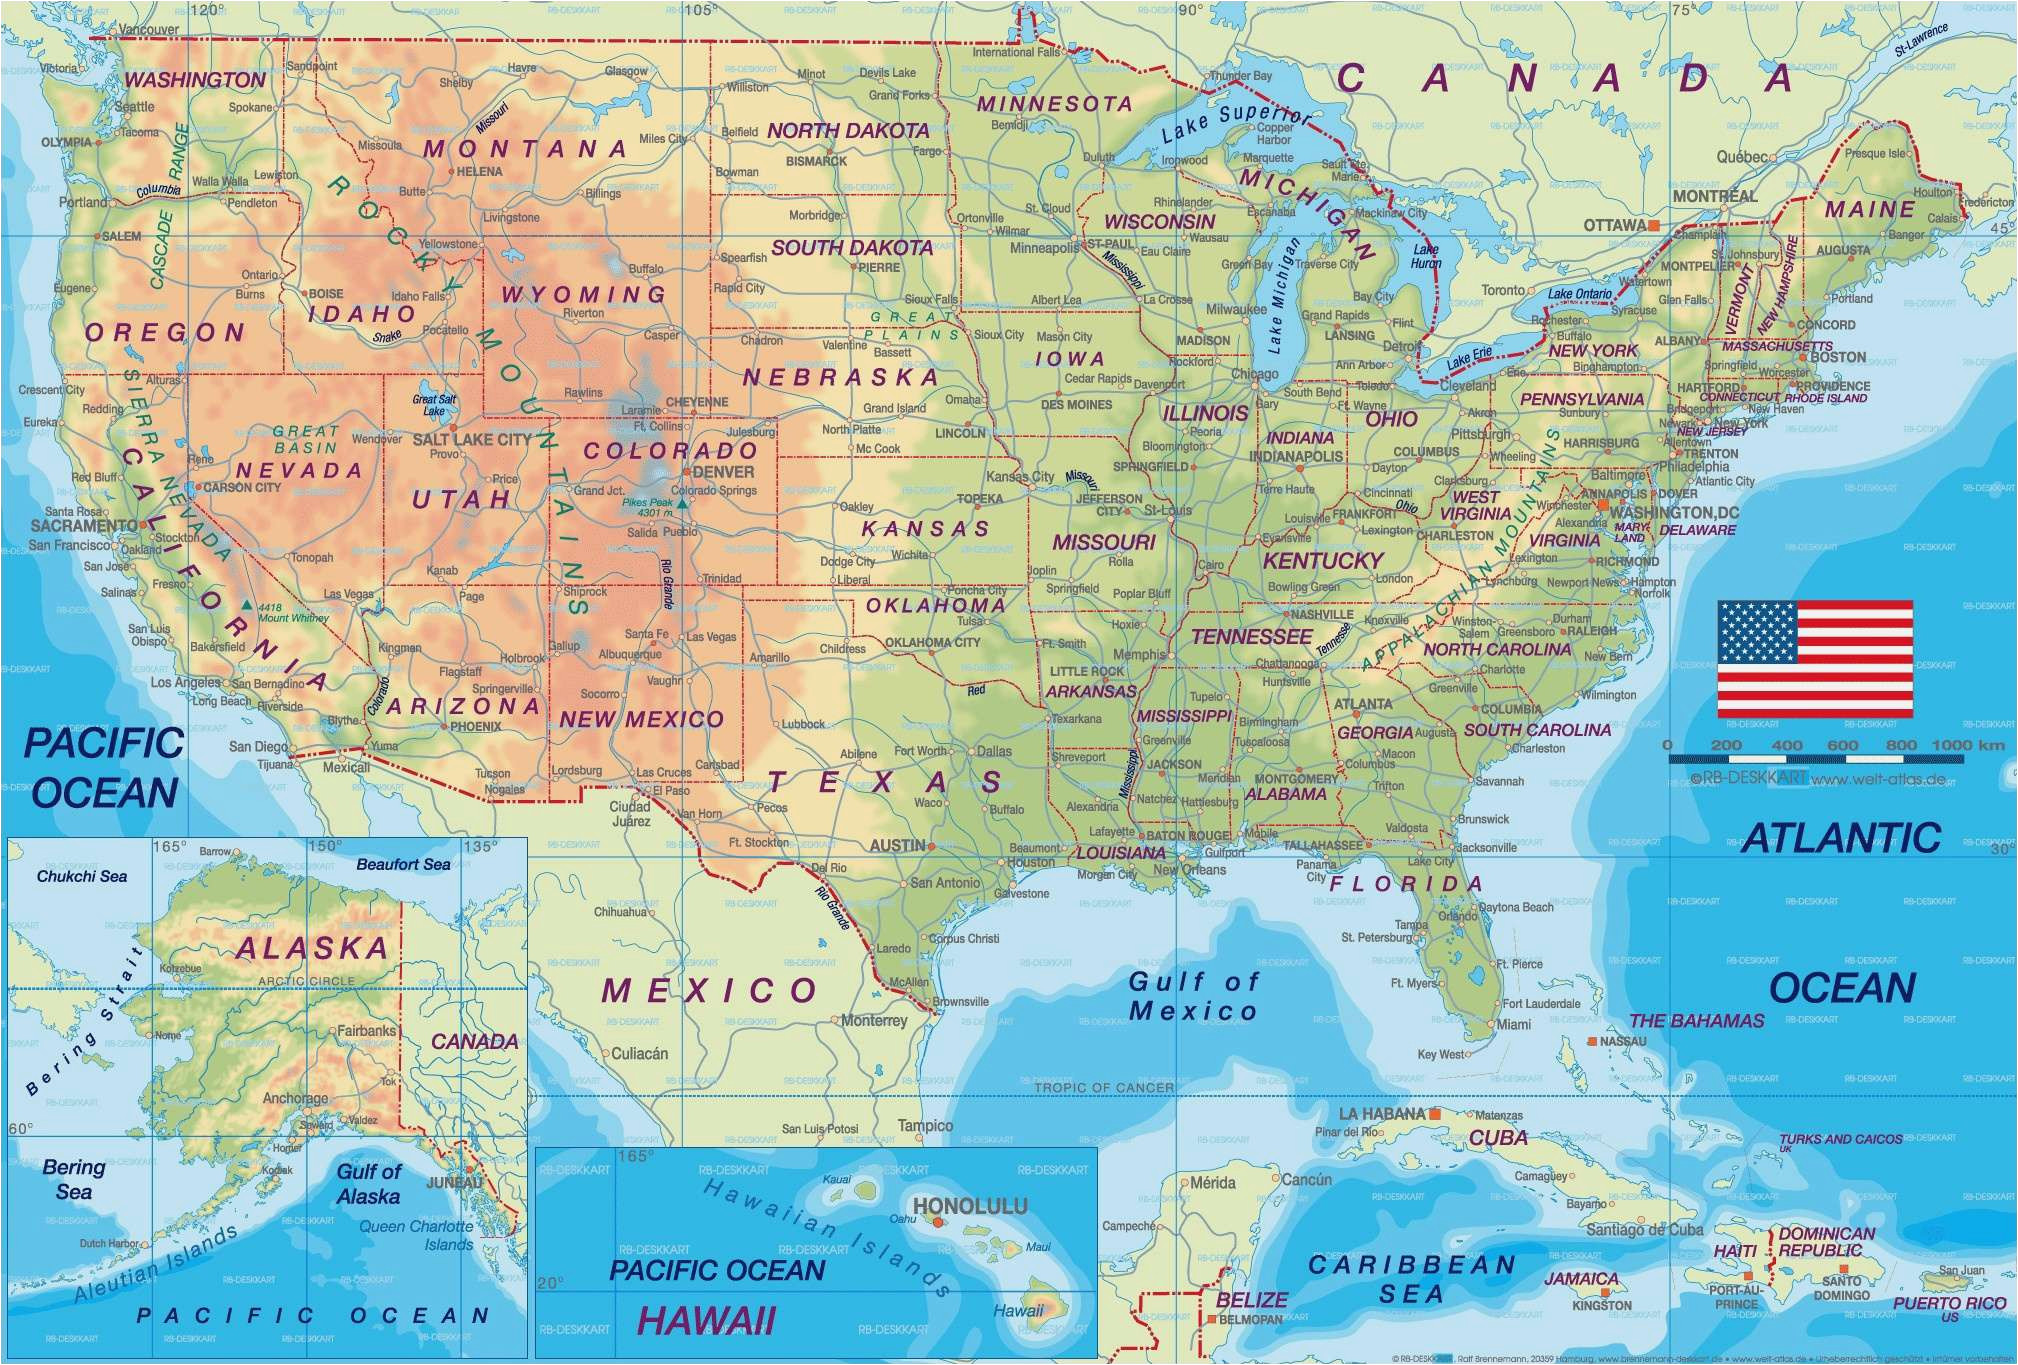 Map Of Georgia And Surrounding States.Map Of Georgia And Surrounding States Fantastic United States Vector